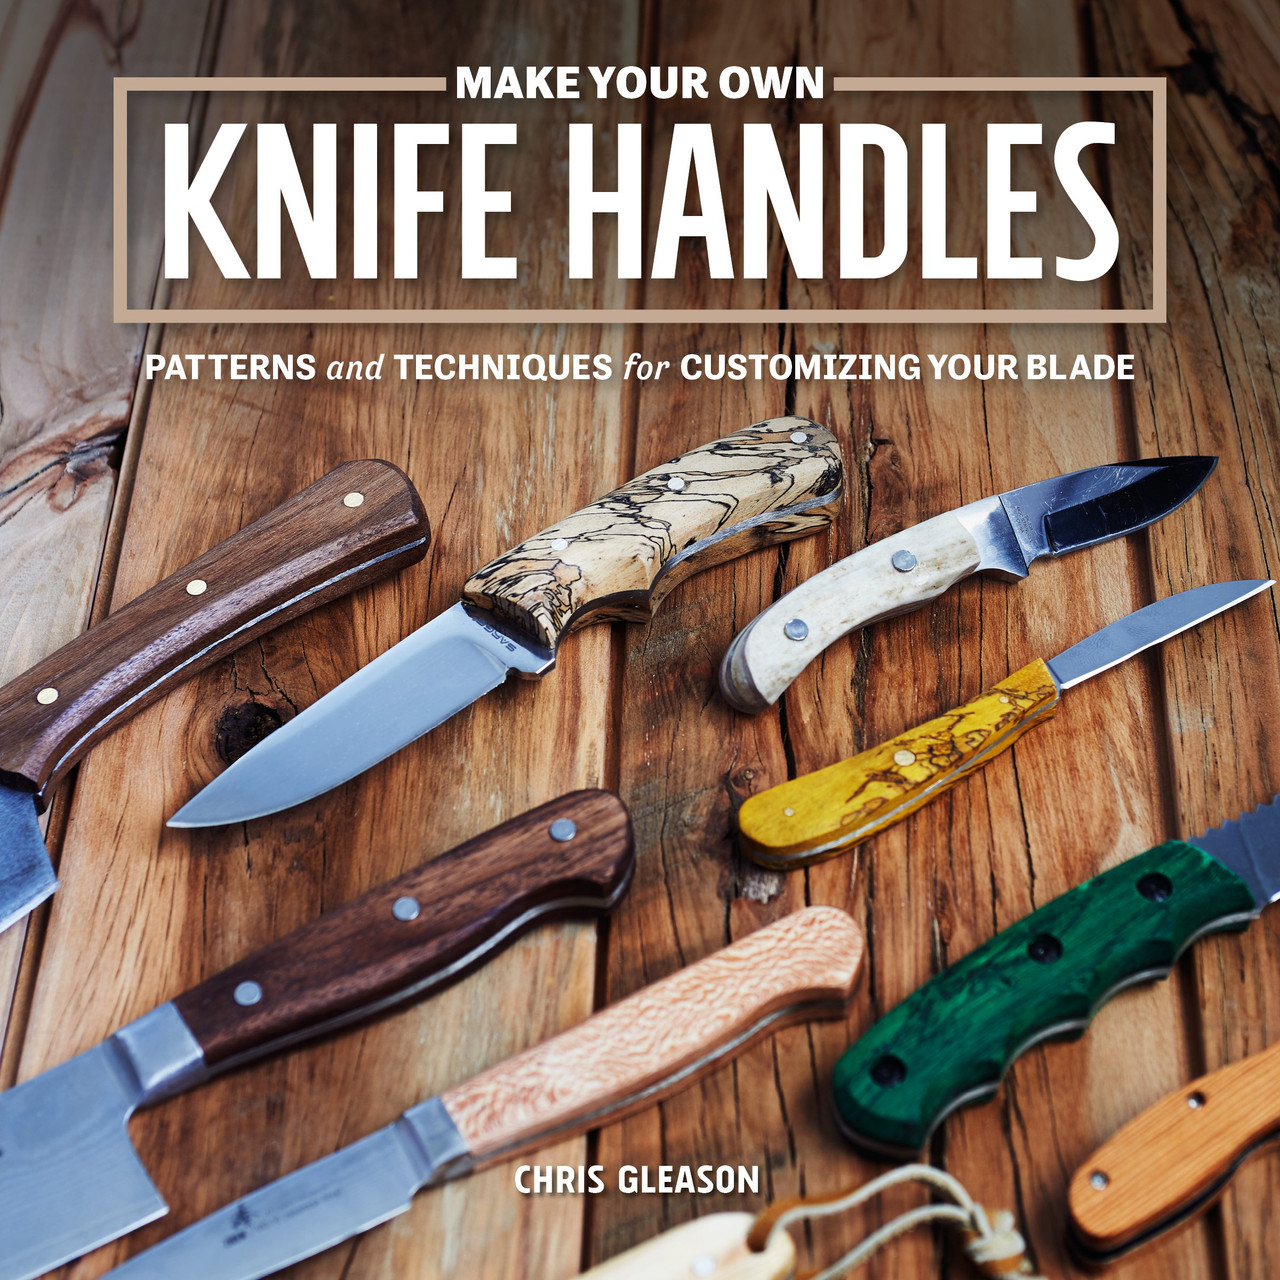 Make Your Own Knife Handle shows some of the different knife handles you can create.